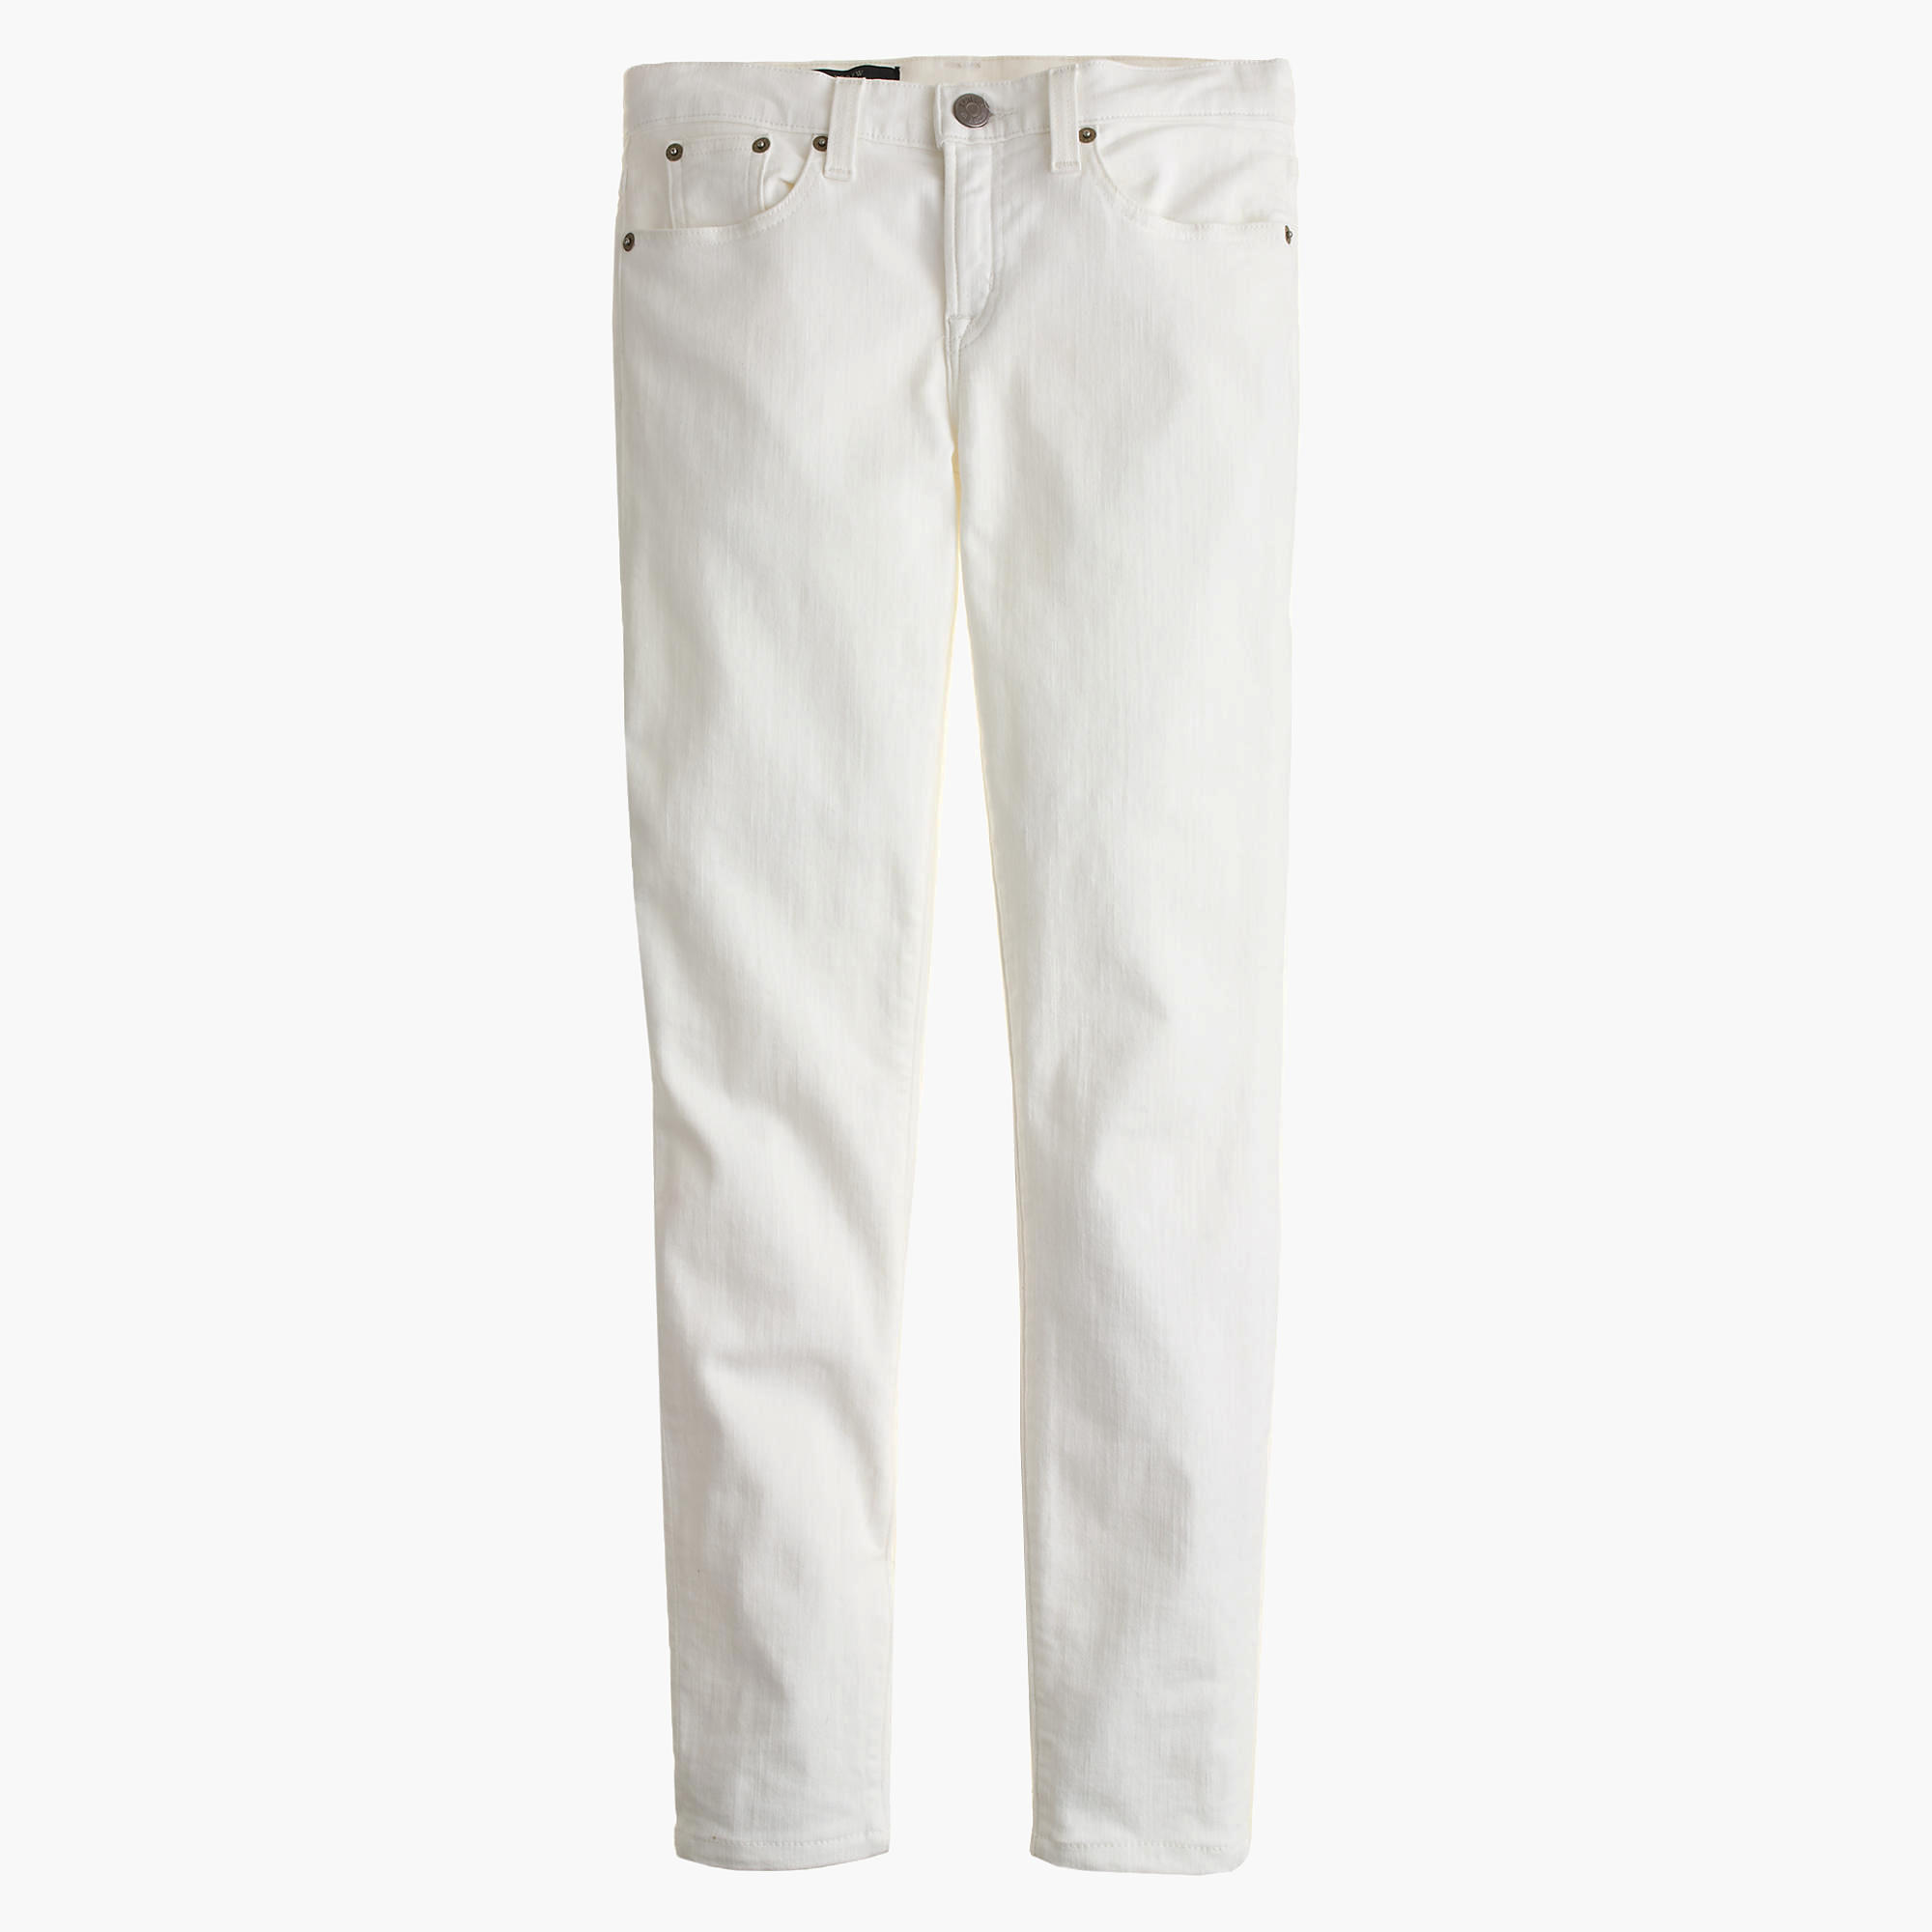 Toothpick Jean In White : Women&39s Jeans | J.Crew